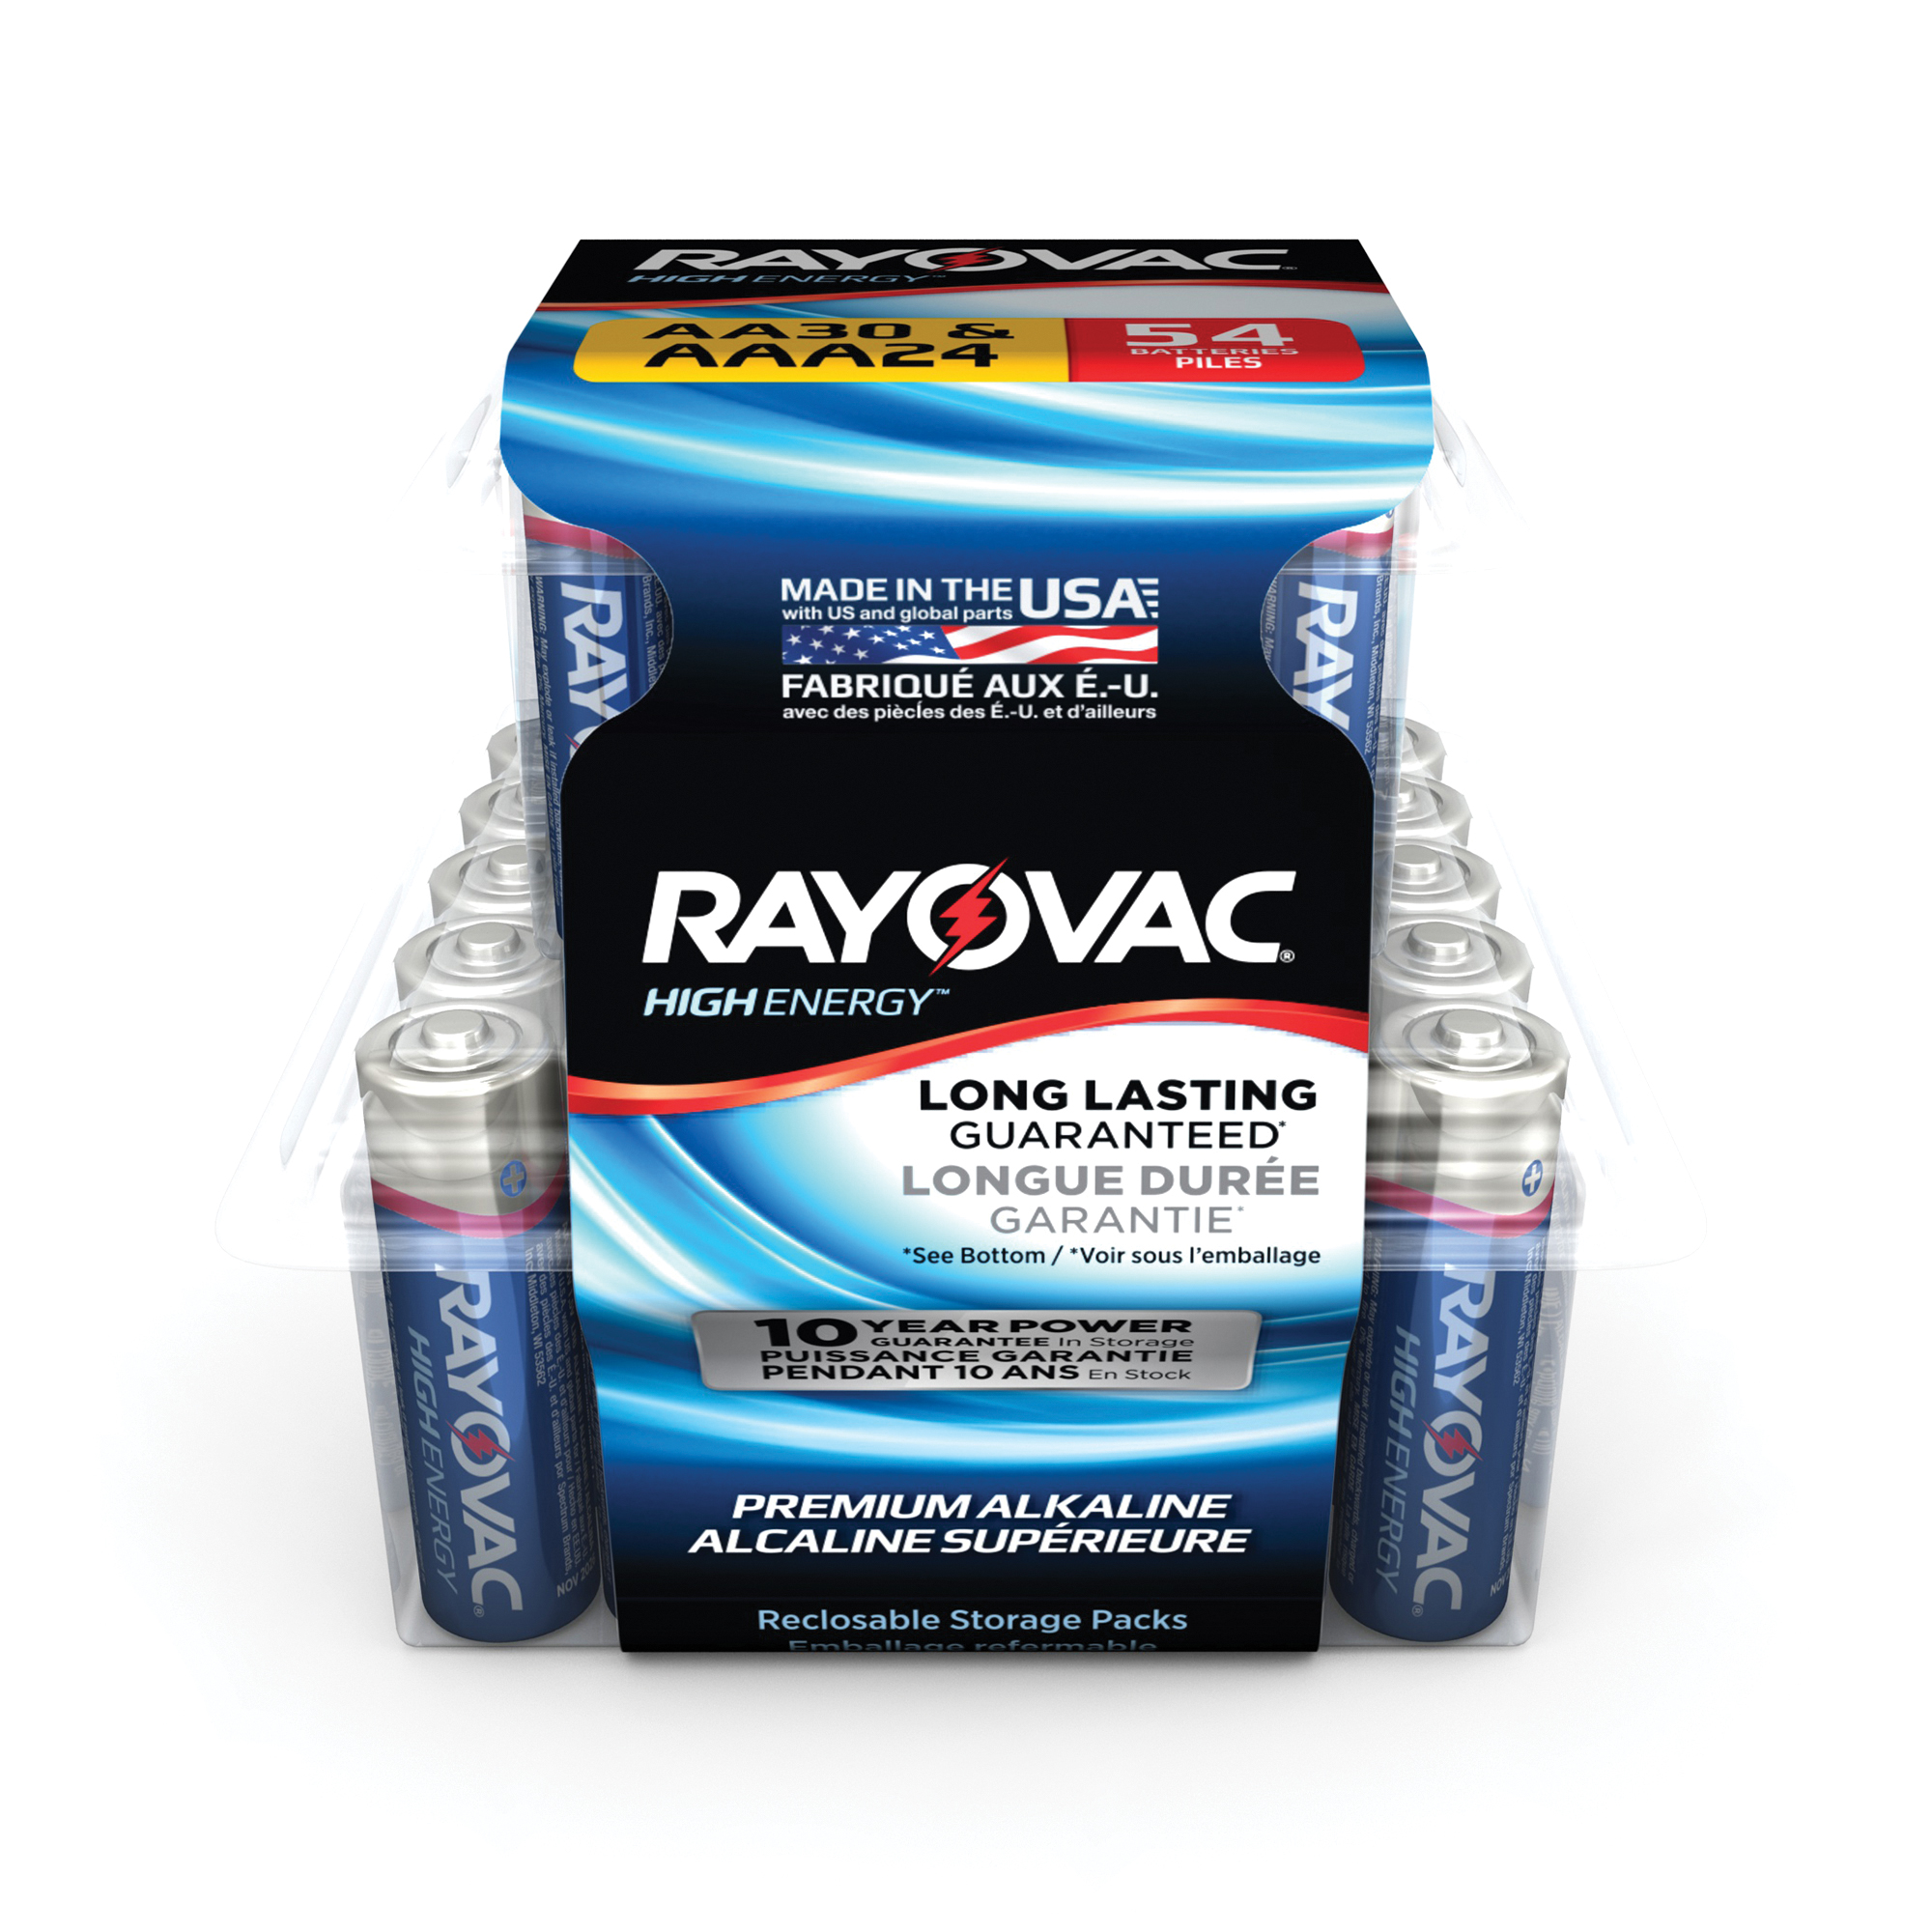 Rayovac High Energy Alkaline 30 AA & 24 AAA Batteries, 54 Count